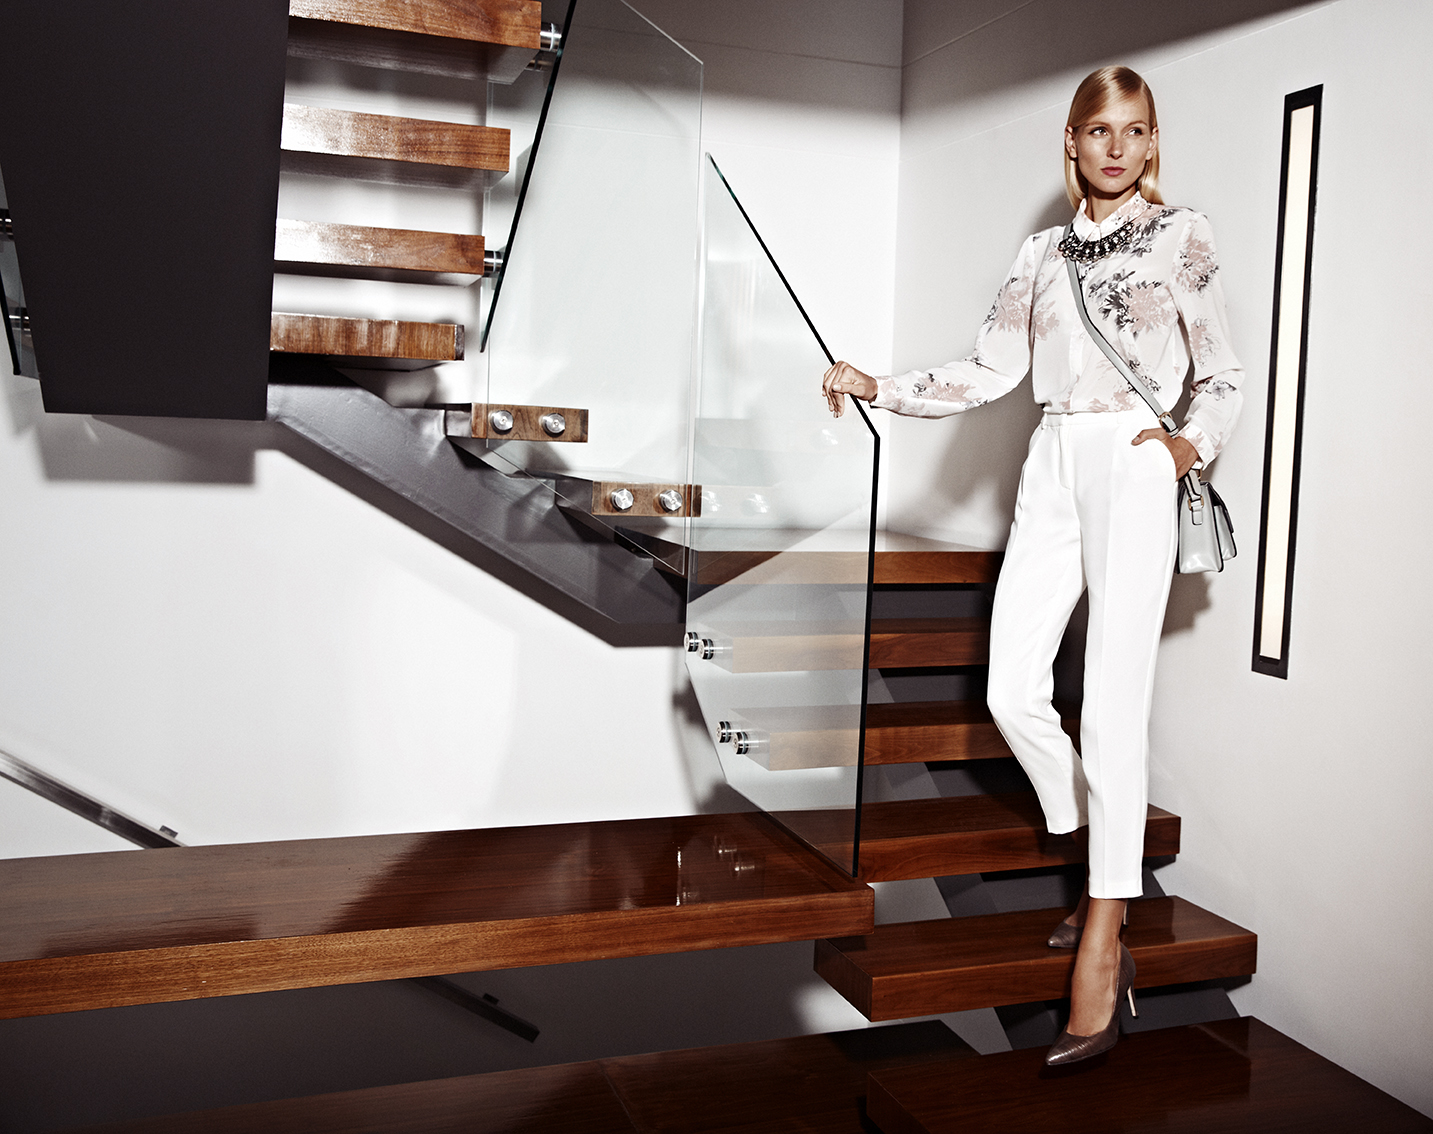 style_and_living_shot_22_1848.jpg